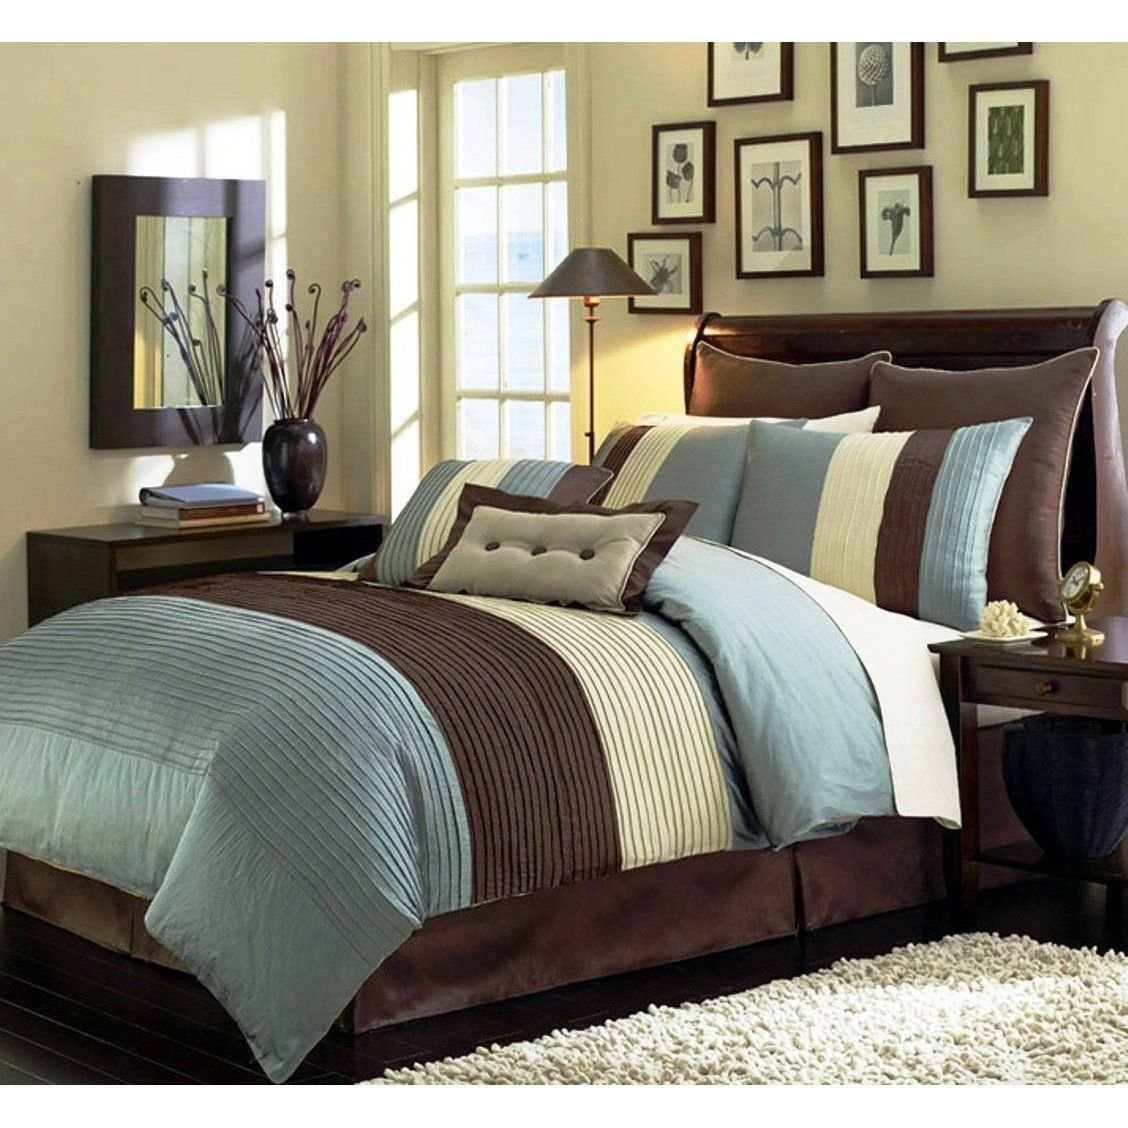 Image of: Ideal Queens Size Bedding